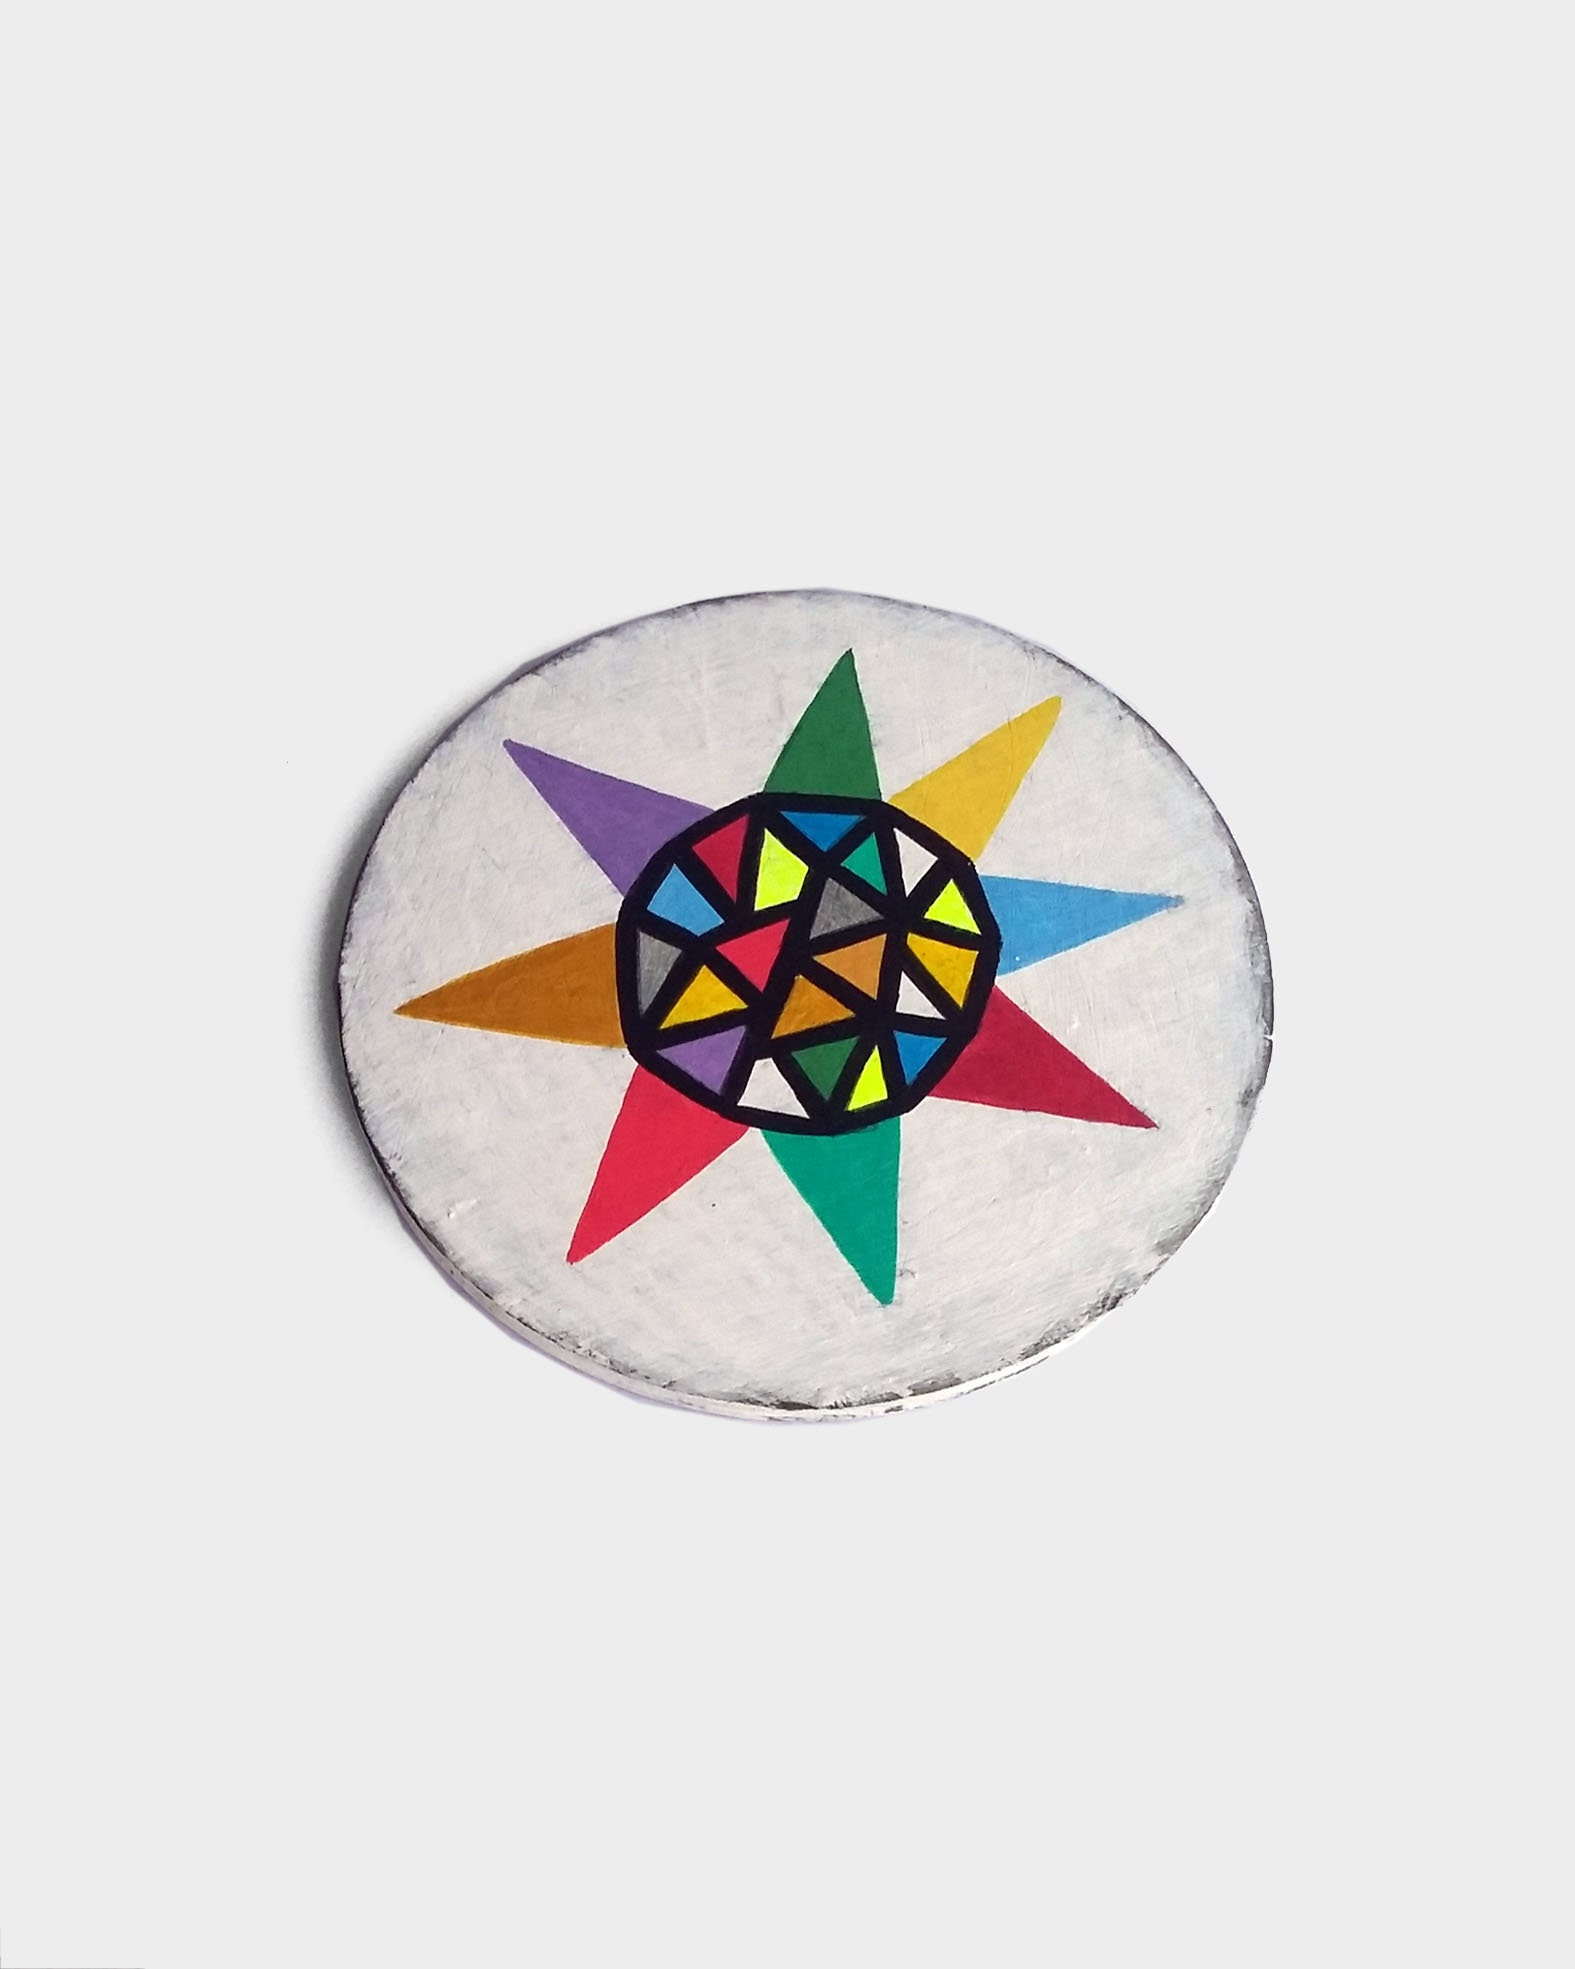 Star_002, colourful small geometric painting - product images  of